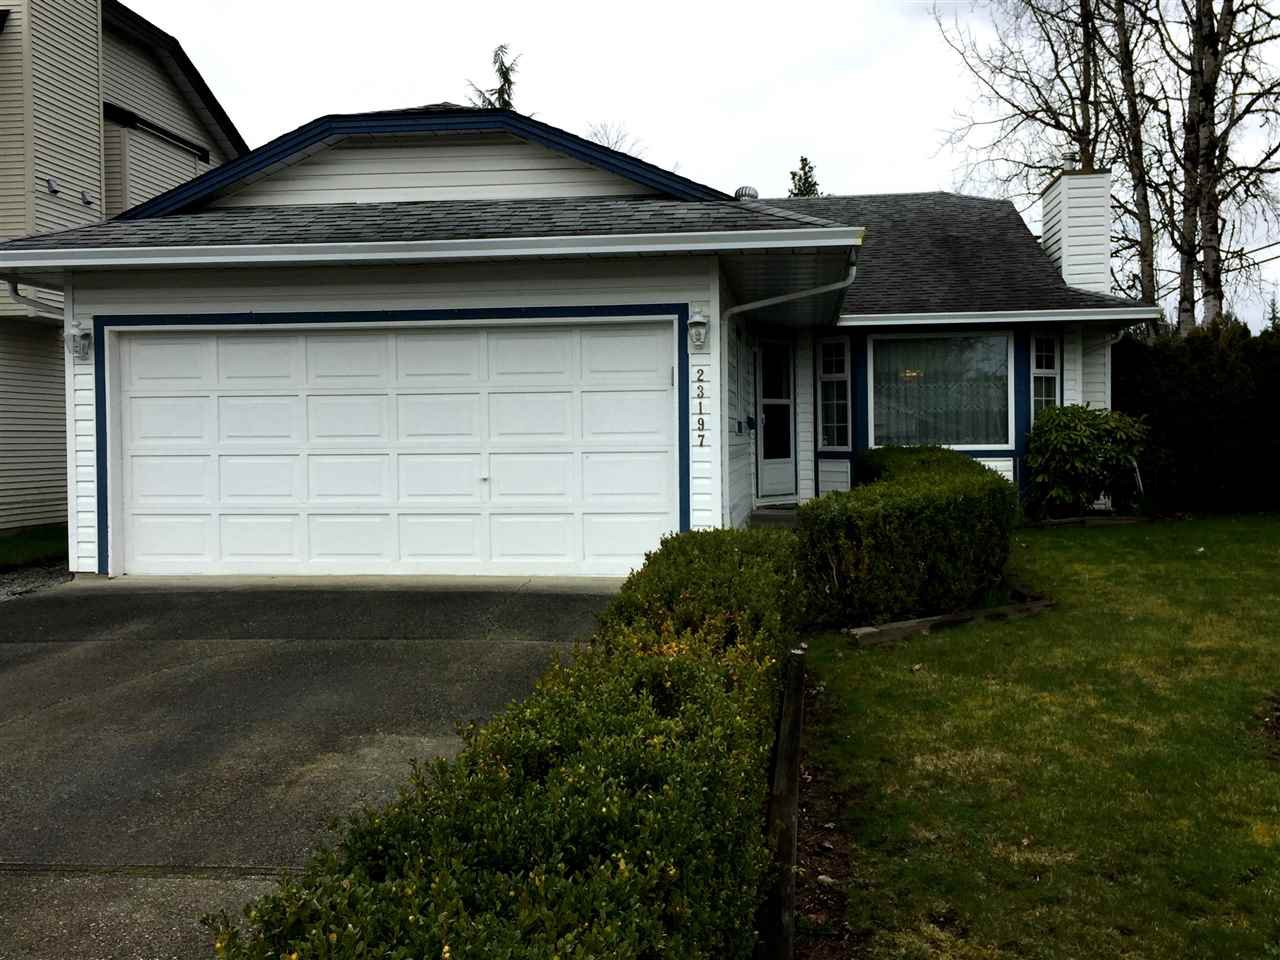 Main Photo: 23197 117 Avenue in Maple Ridge: West Central House for sale : MLS®# R2242619